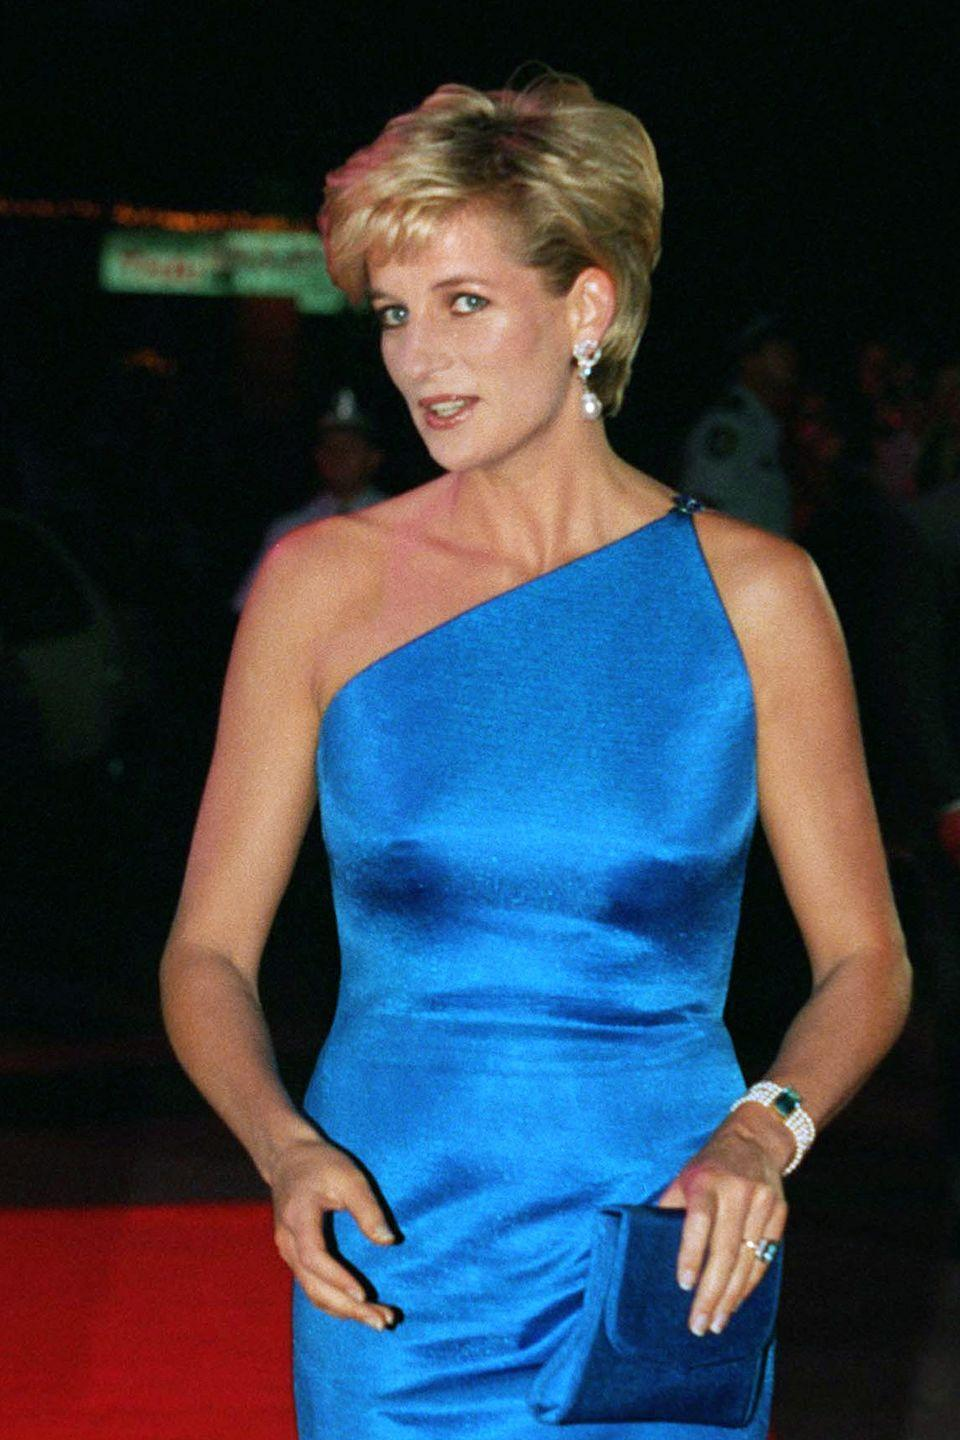 """<p>Diana, Princess of Wales had long worn a poofy <a href=""""https://www.goodhousekeeping.com/beauty/hair/news/g4020/princess-diana-hair/"""" rel=""""nofollow noopener"""" target=""""_blank"""" data-ylk=""""slk:'80s 'do"""" class=""""link rapid-noclick-resp"""">'80s 'do</a>, but a meeting with celebrity hair stylist Sam McKnight and a leap of faith inspired that chic pixie cut. """"Like many women, she used to hide behind her hair,"""" he told the <a href=""""http://www.telegraph.co.uk/beauty/people/sam-mcknight-on-creating-that-iconic-princess-diana-haircut/"""" rel=""""nofollow noopener"""" target=""""_blank"""" data-ylk=""""slk:Daily Telegraph"""" class=""""link rapid-noclick-resp""""><em>Daily Telegraph</em></a>. """"She said, 'what would you do if I gave you free reign?' I said, 'cut it short,' and she said, could you do it now?'""""</p>"""